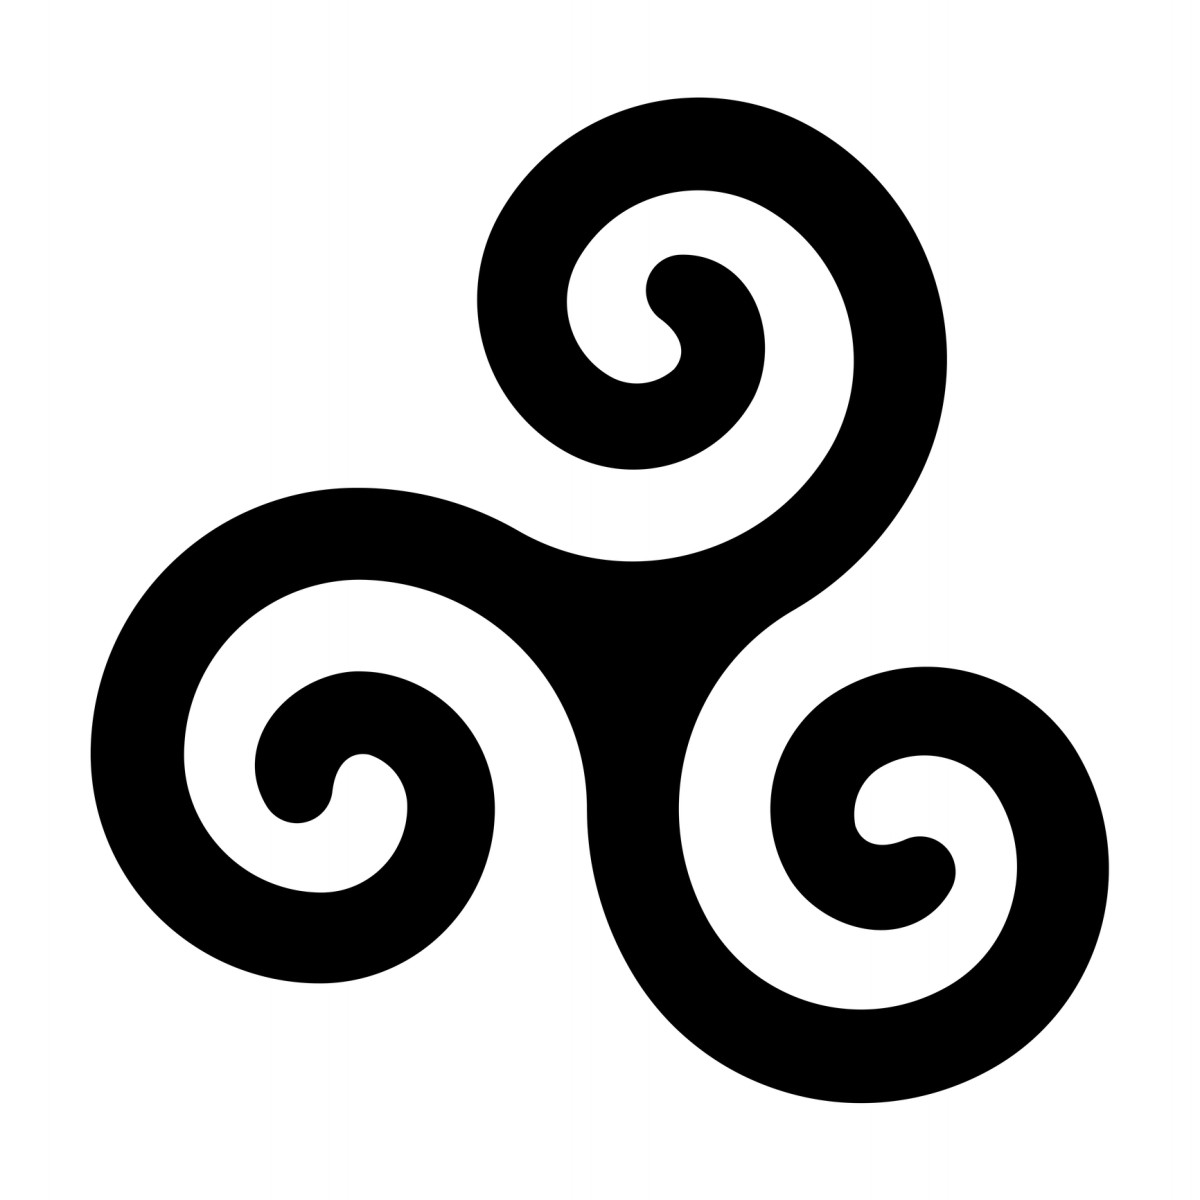 The Triskelion symbol.